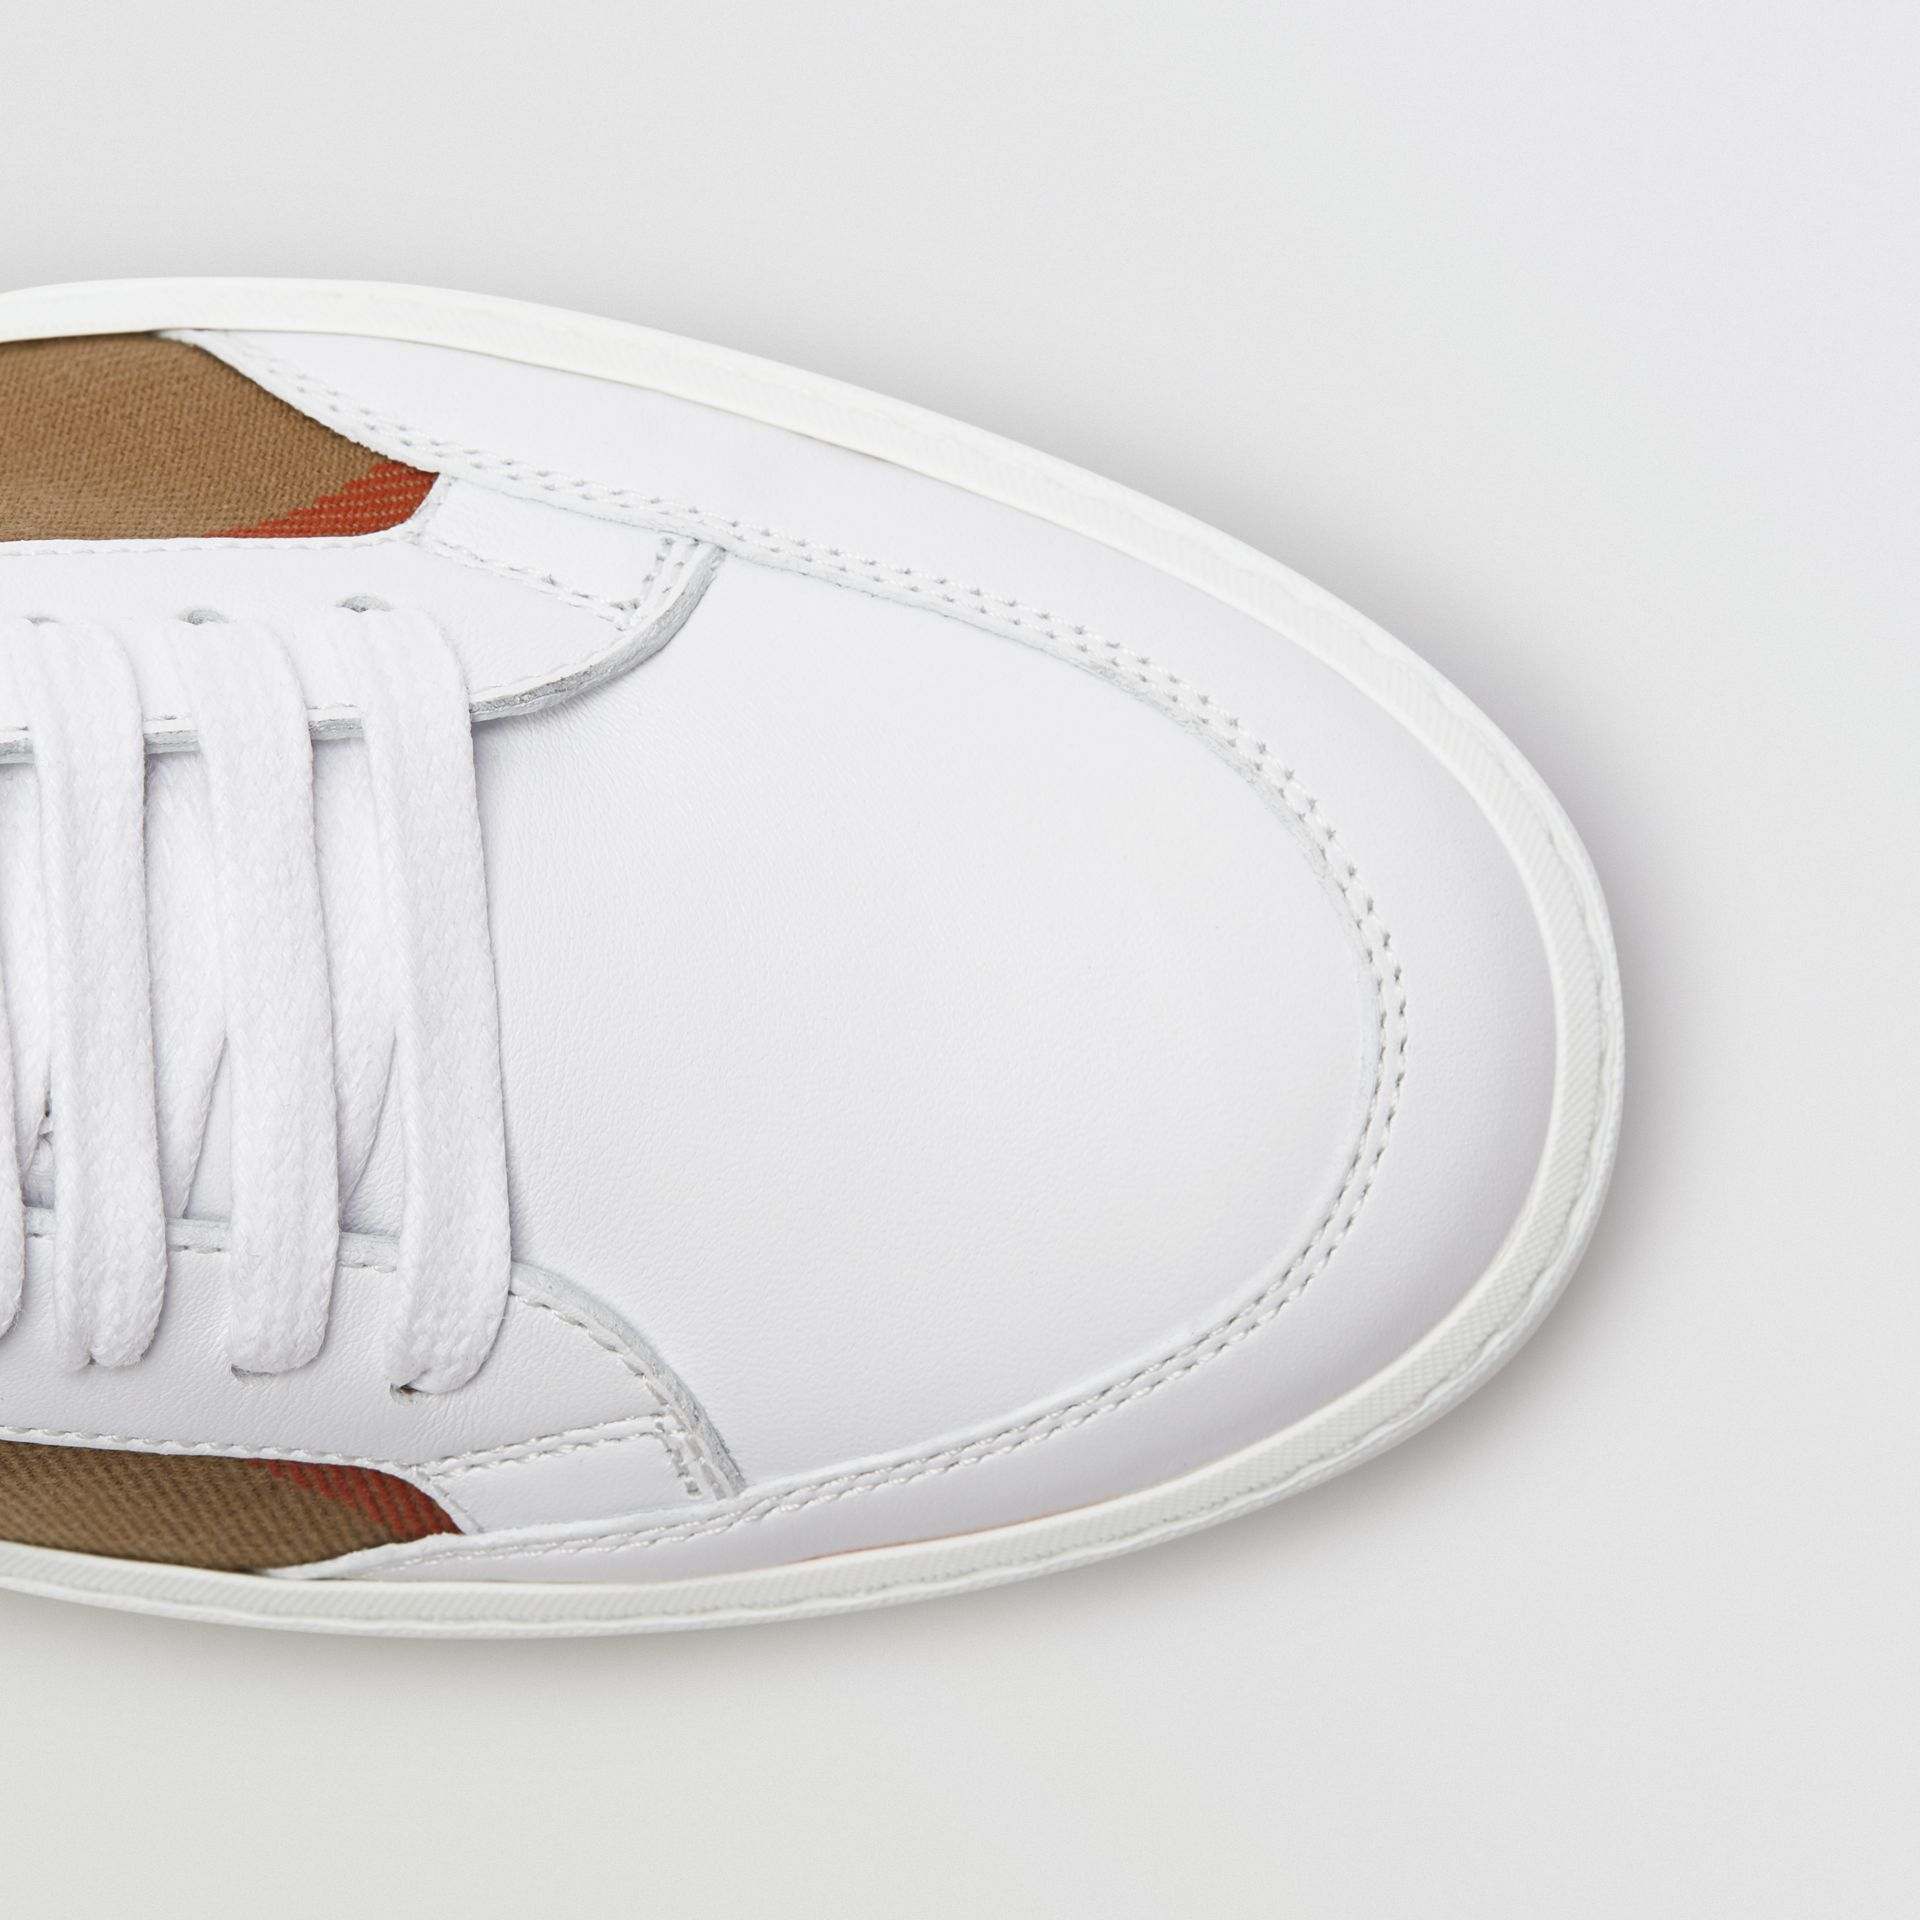 Check Detail Leather Sneakers in House Check/ Optic White - Women | Burberry Hong Kong - gallery image 1